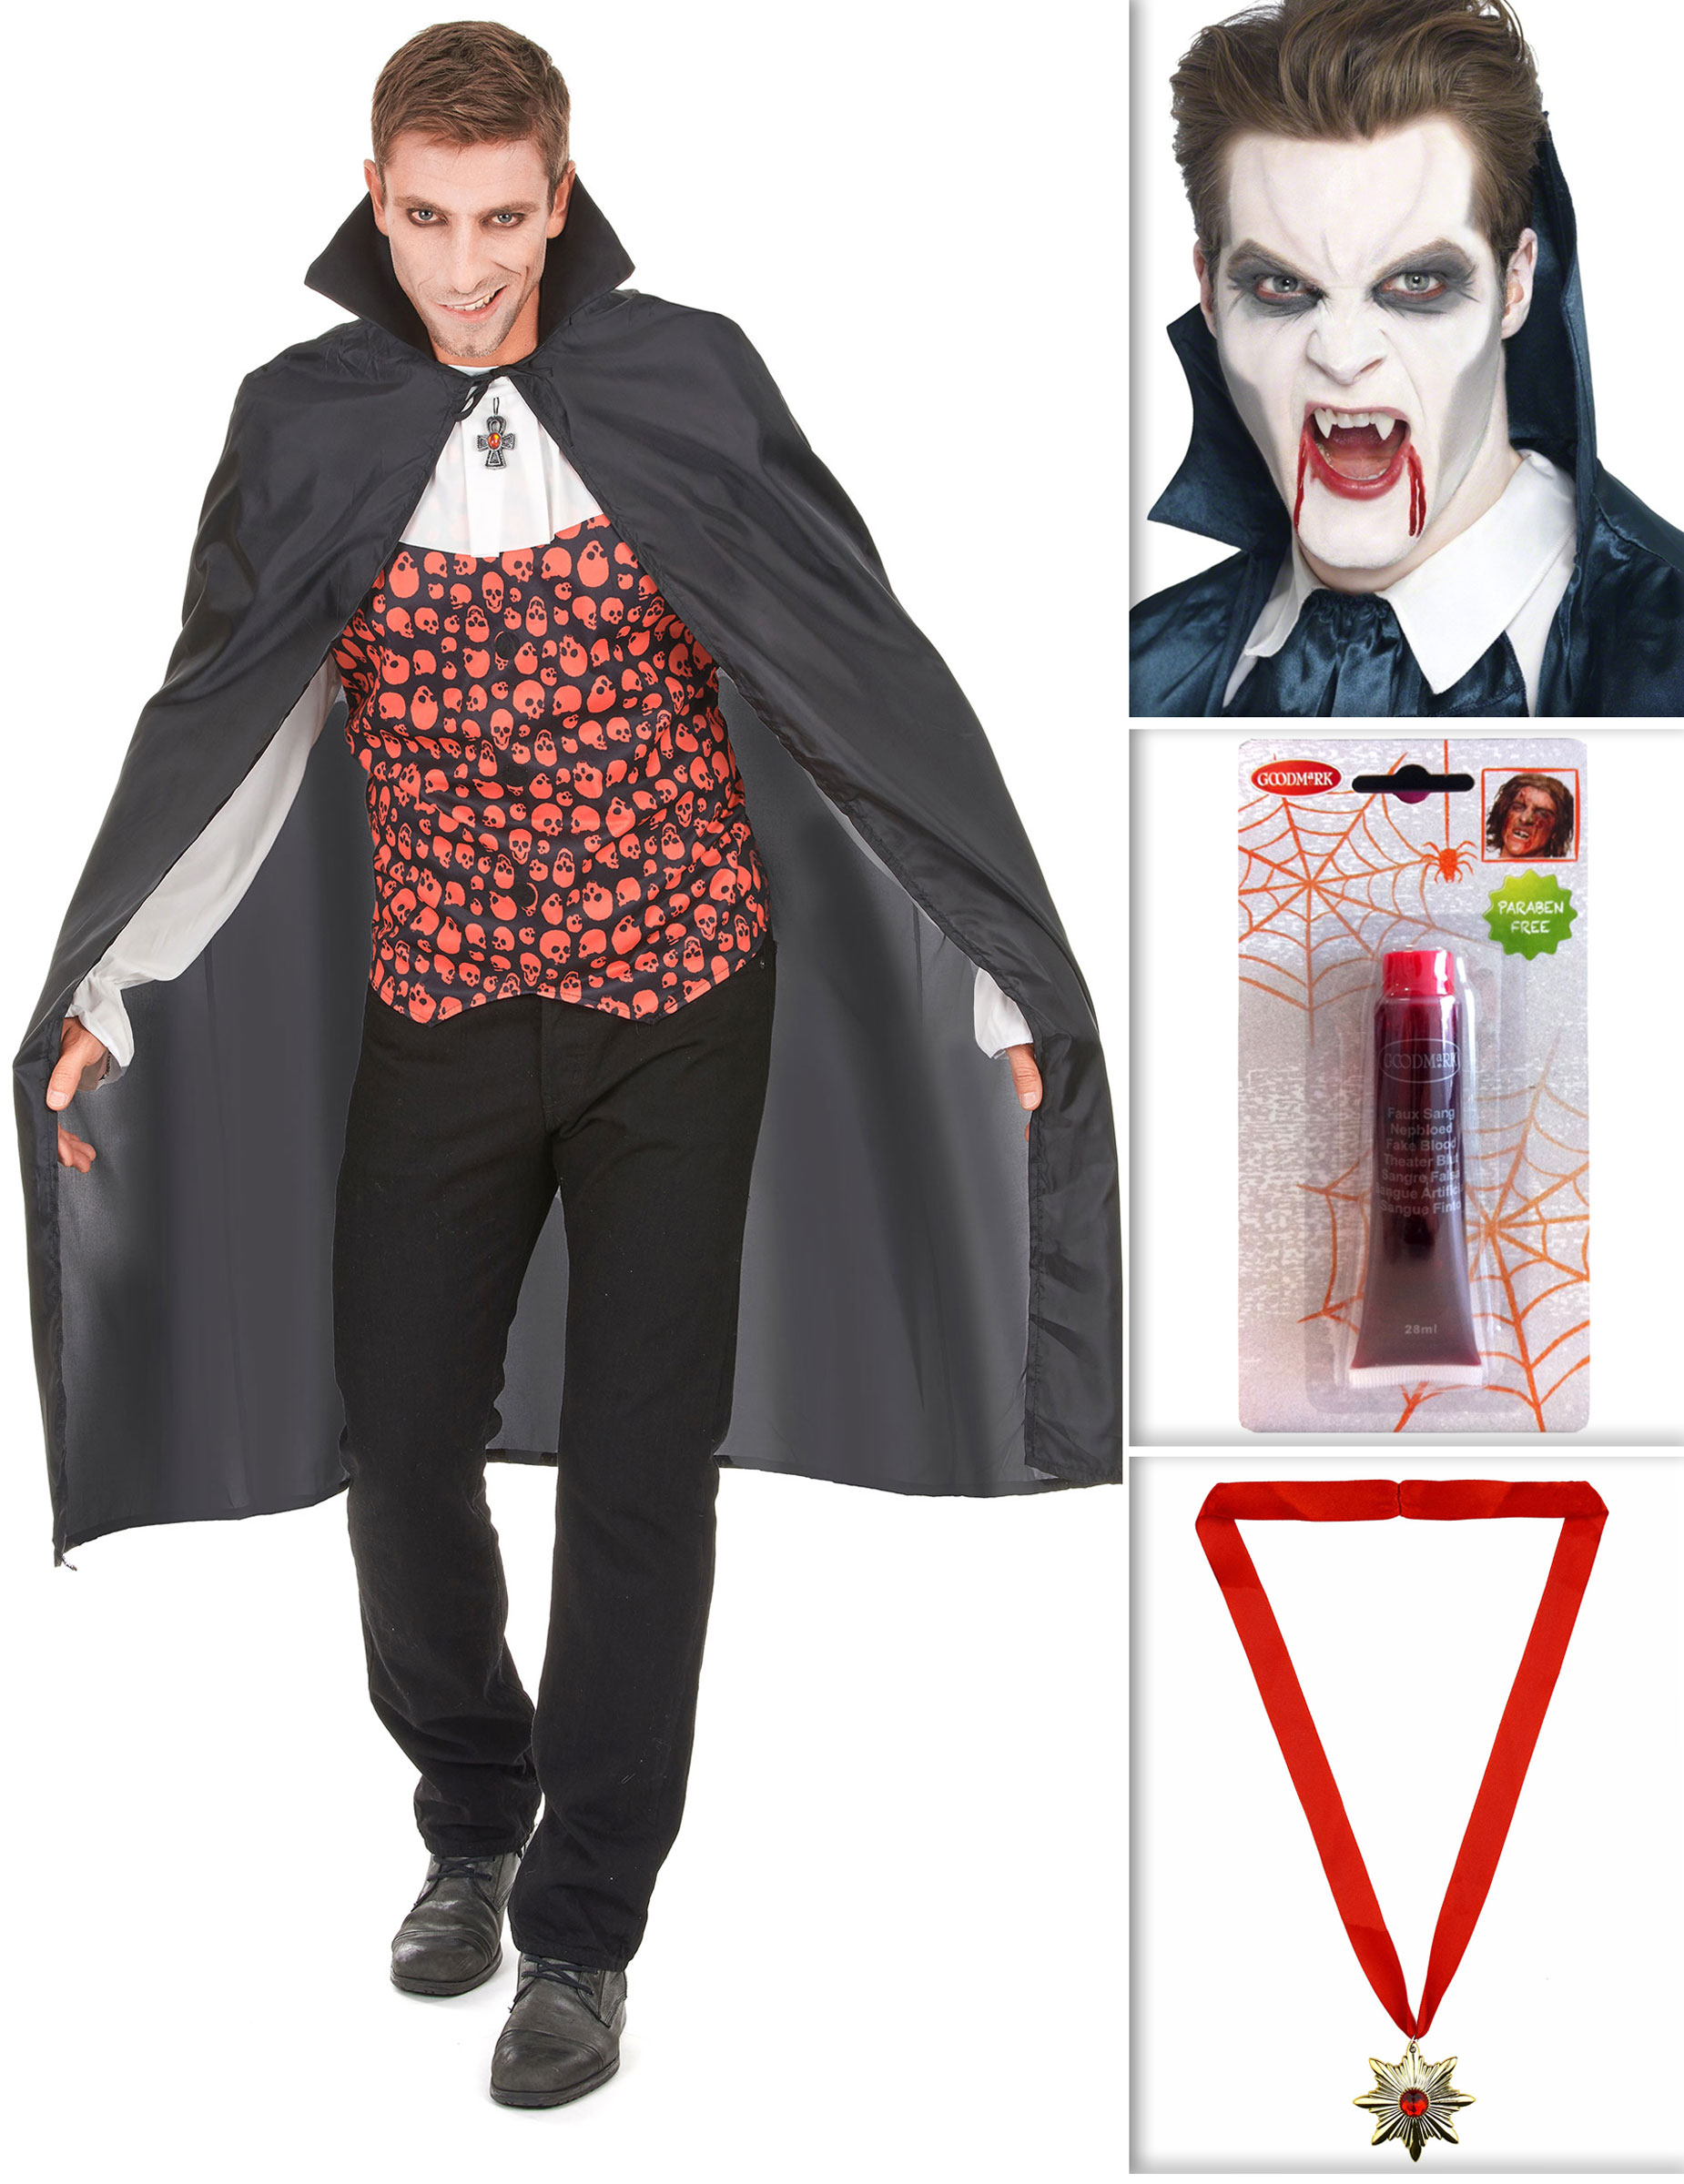 Set costume da vampiro per halloween  Costumi adulti b88e9d559440